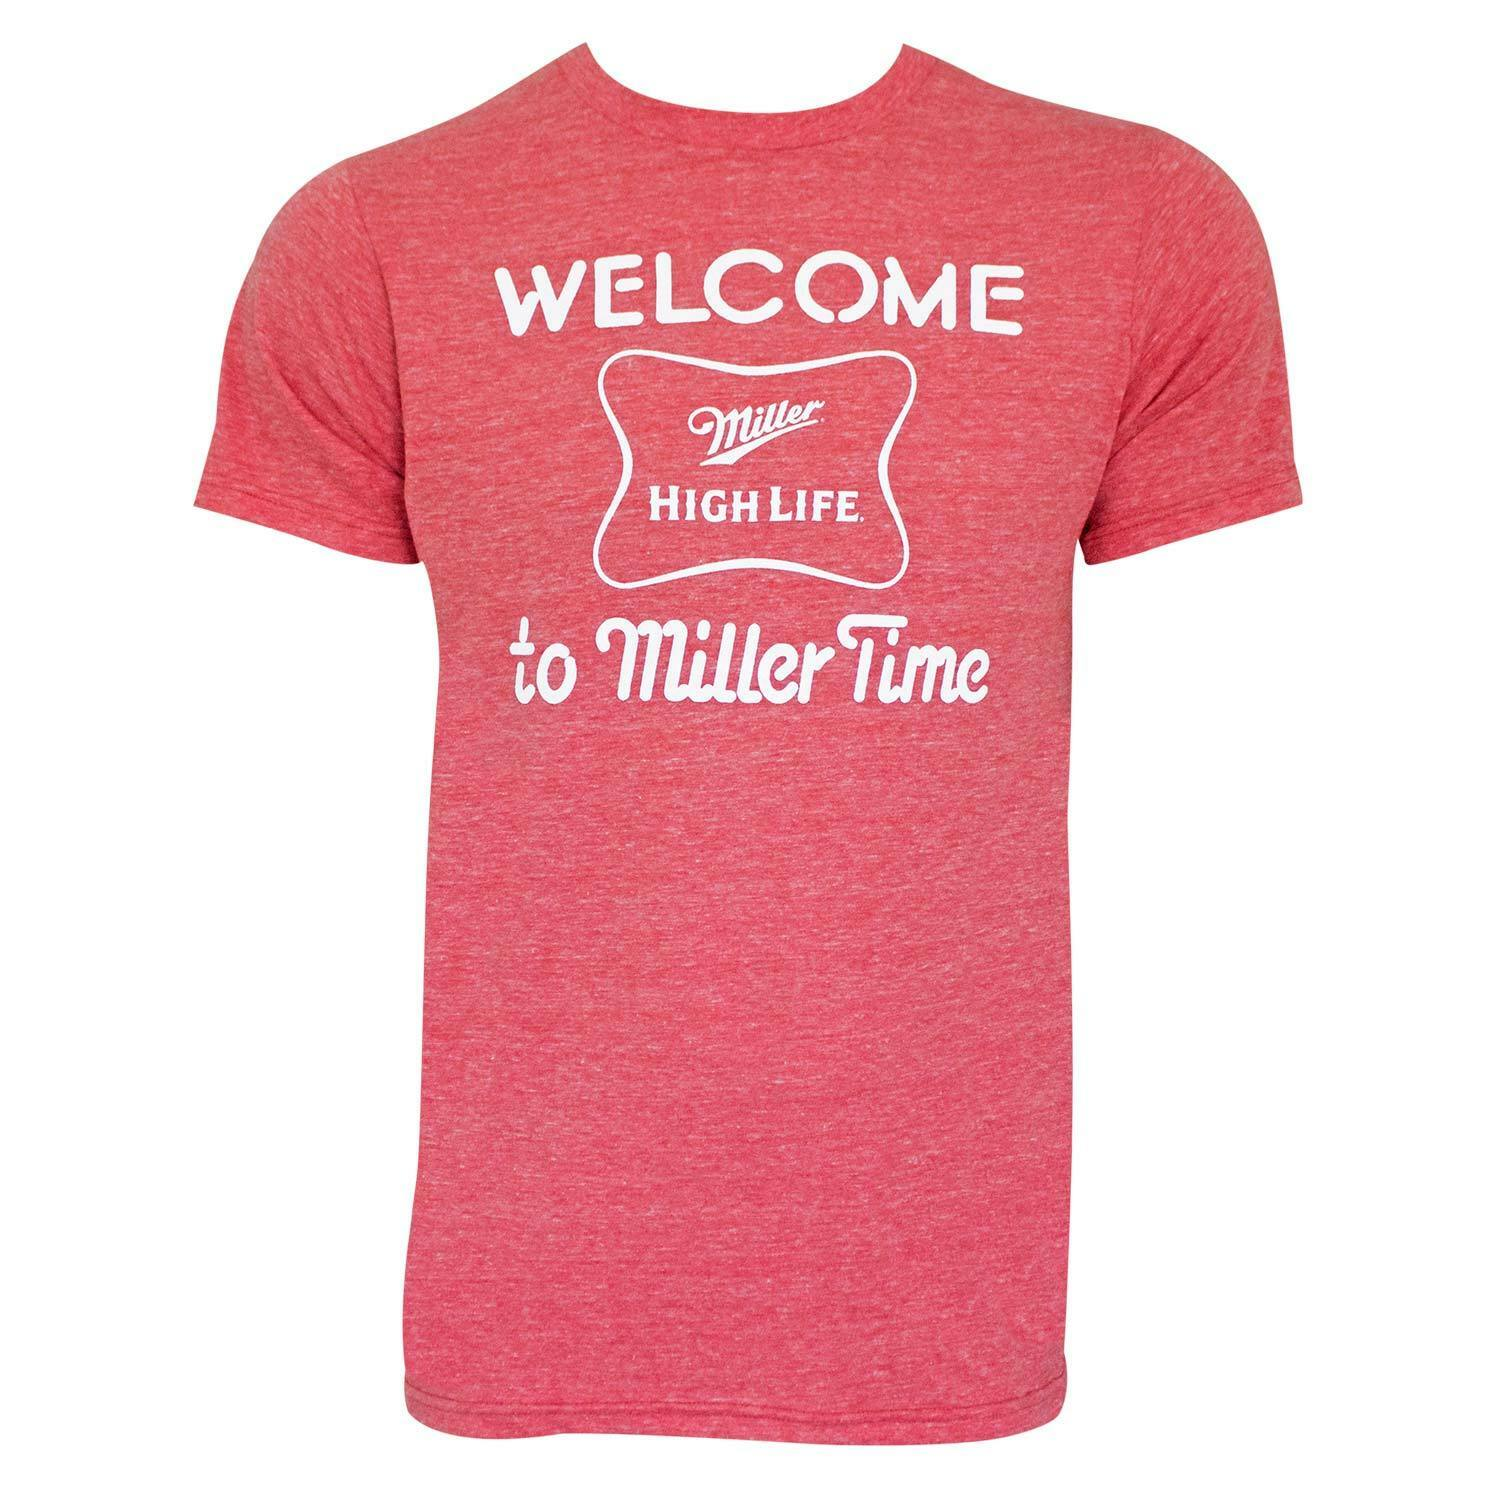 Miller High Life Retro Brand Welcome To Miller Time Tee Shirt Red